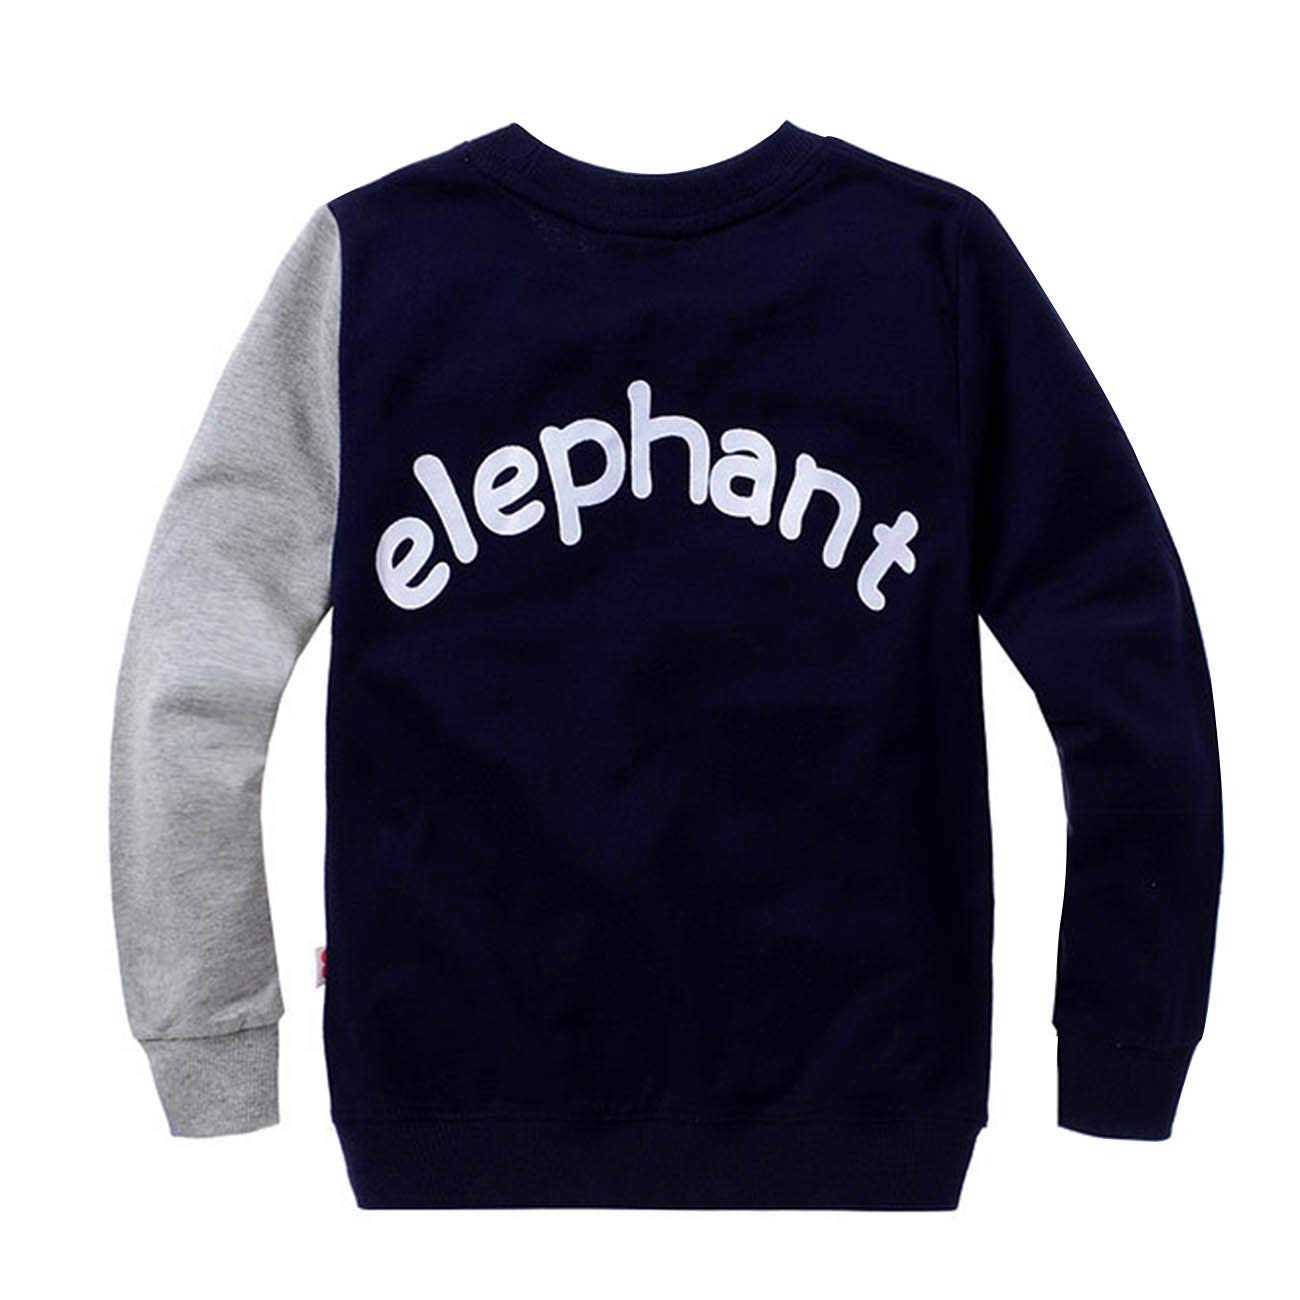 LitBud Little Boys Jumpers Kids Elephant Sweaters Sweatshirt Pullover Casual Shirt Tops